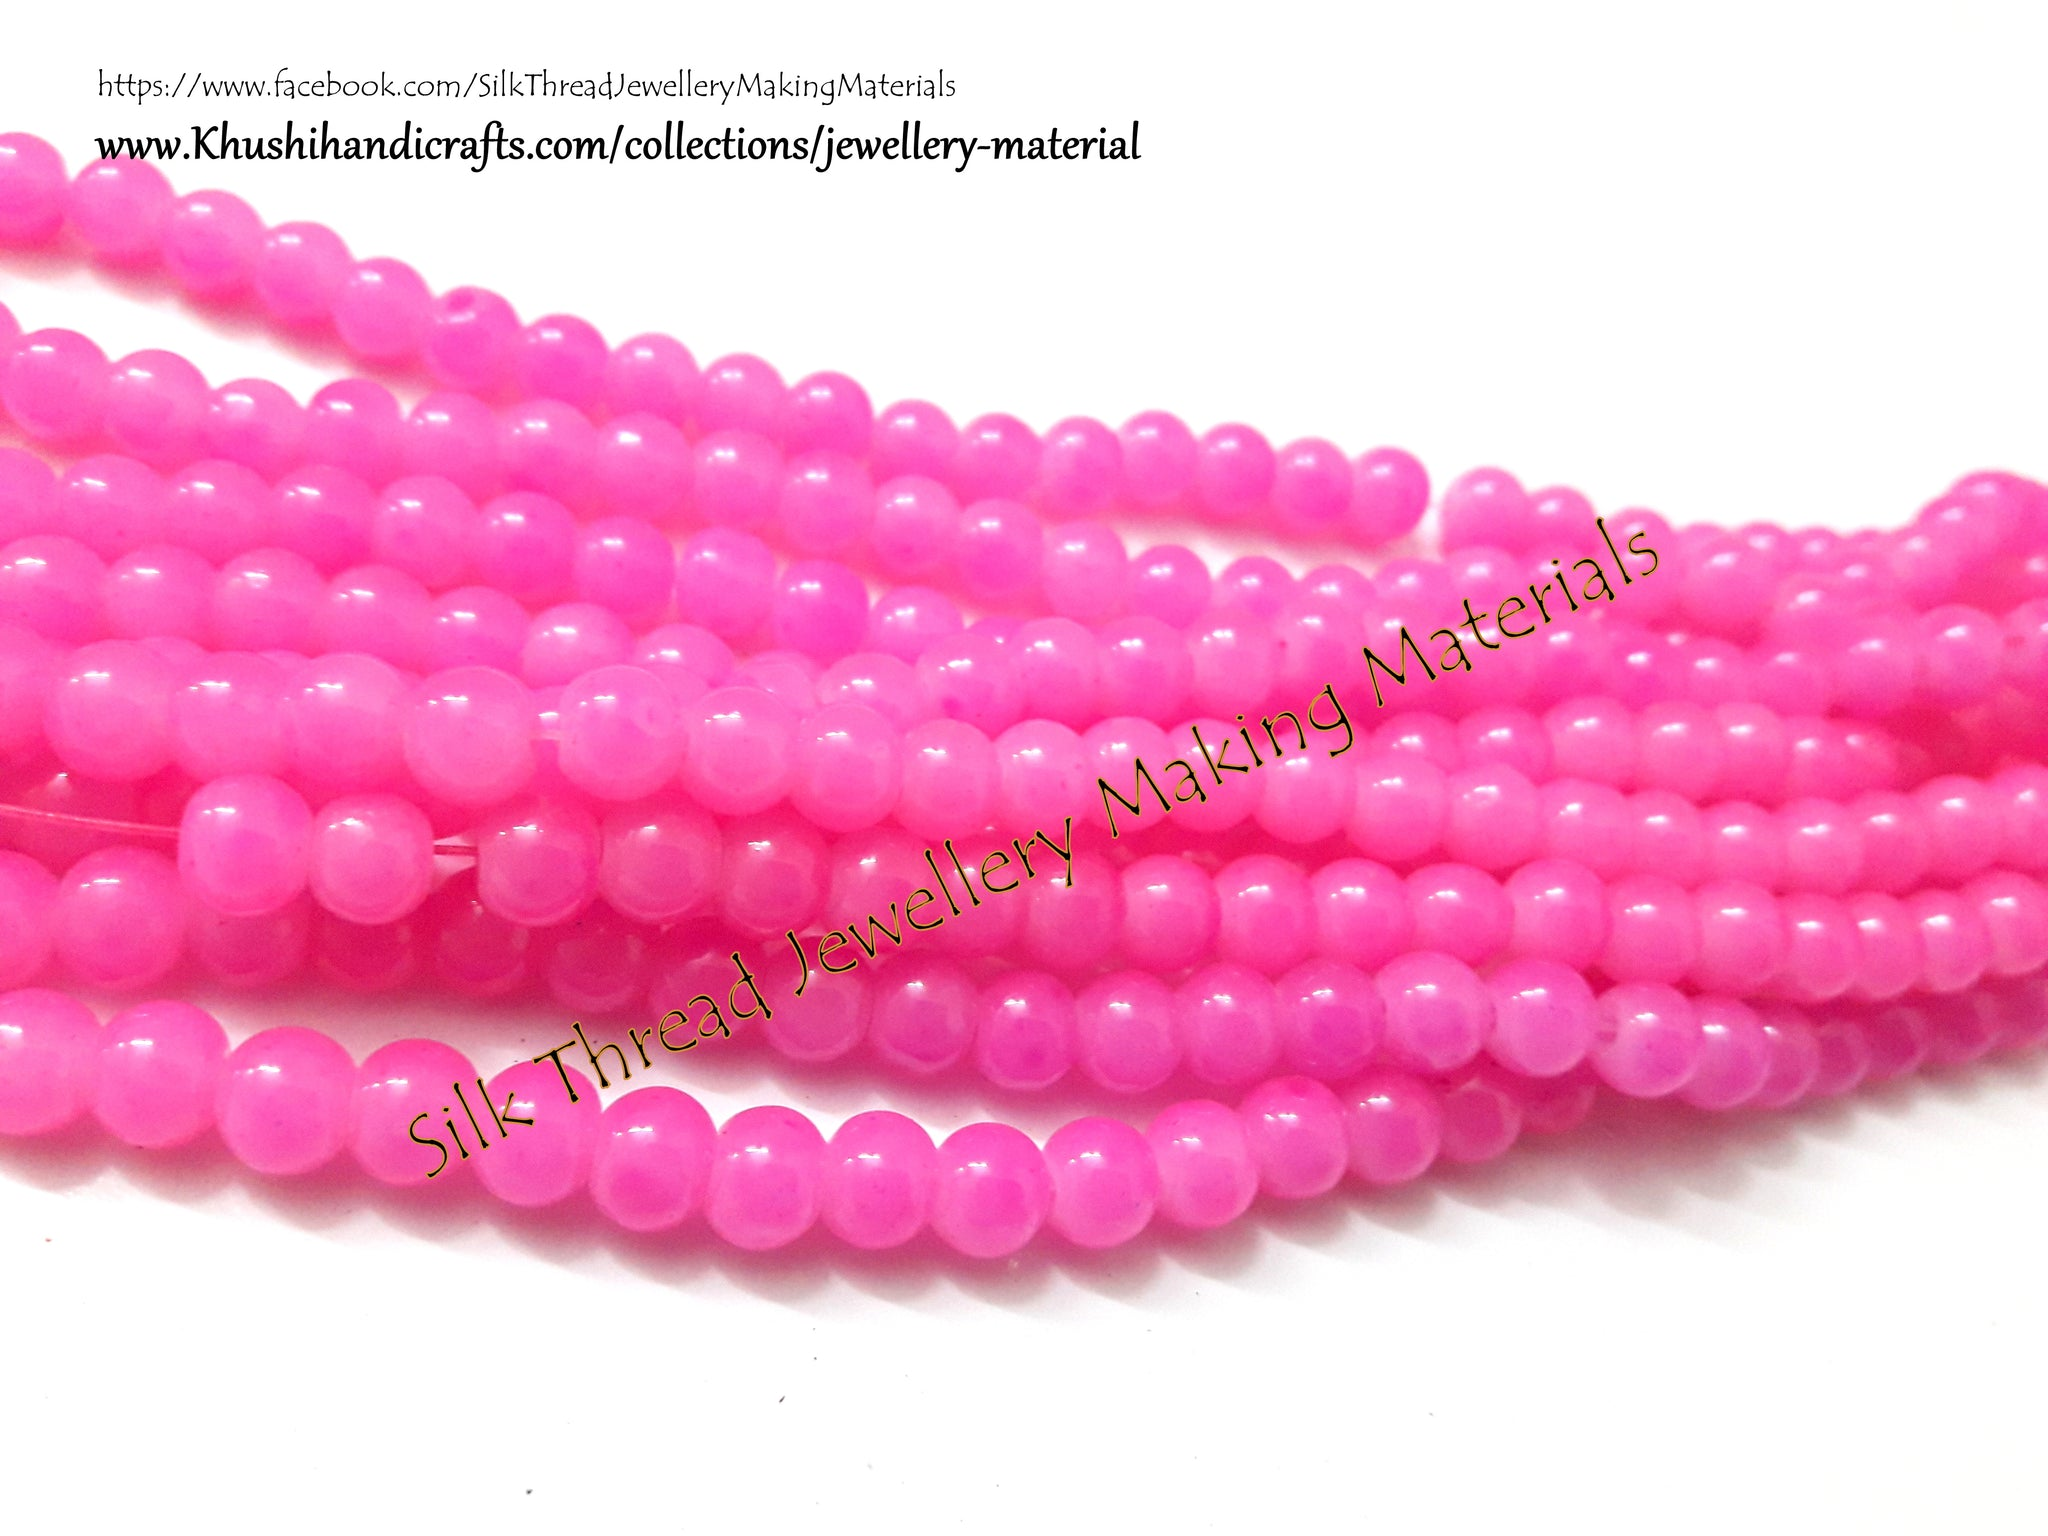 Glass beads 5 mm - Light Pink